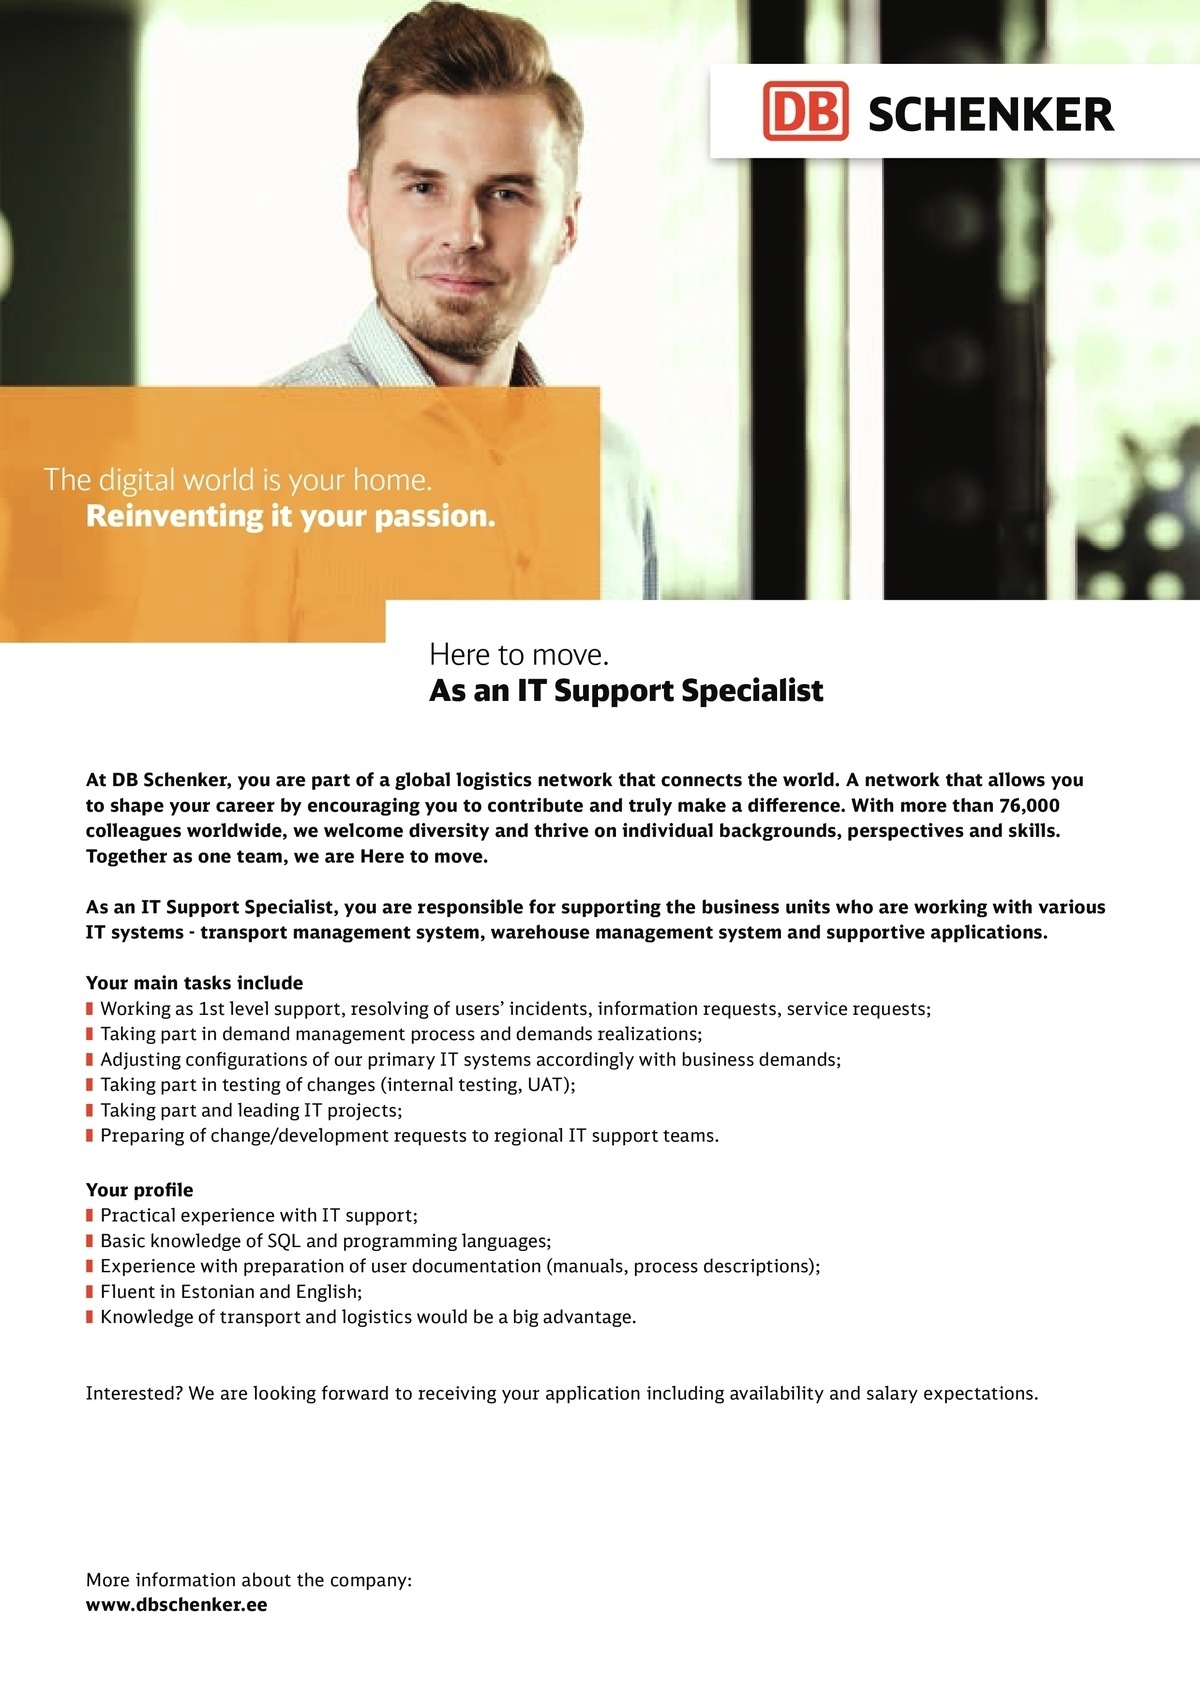 CV Market´s client IT support specialist